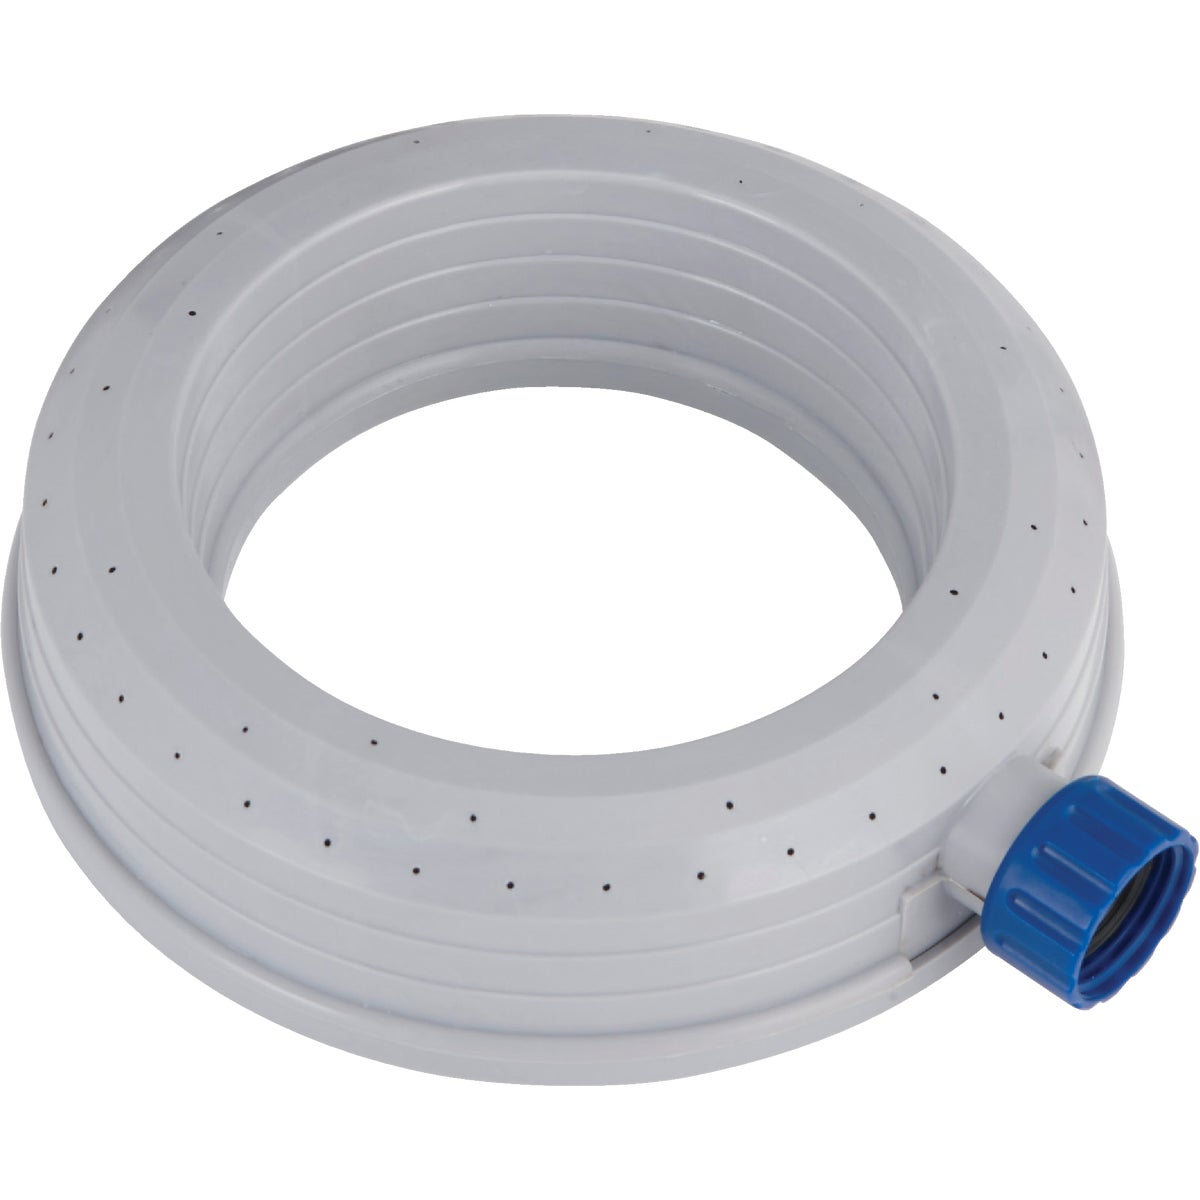 POLY RING SPRINKLER